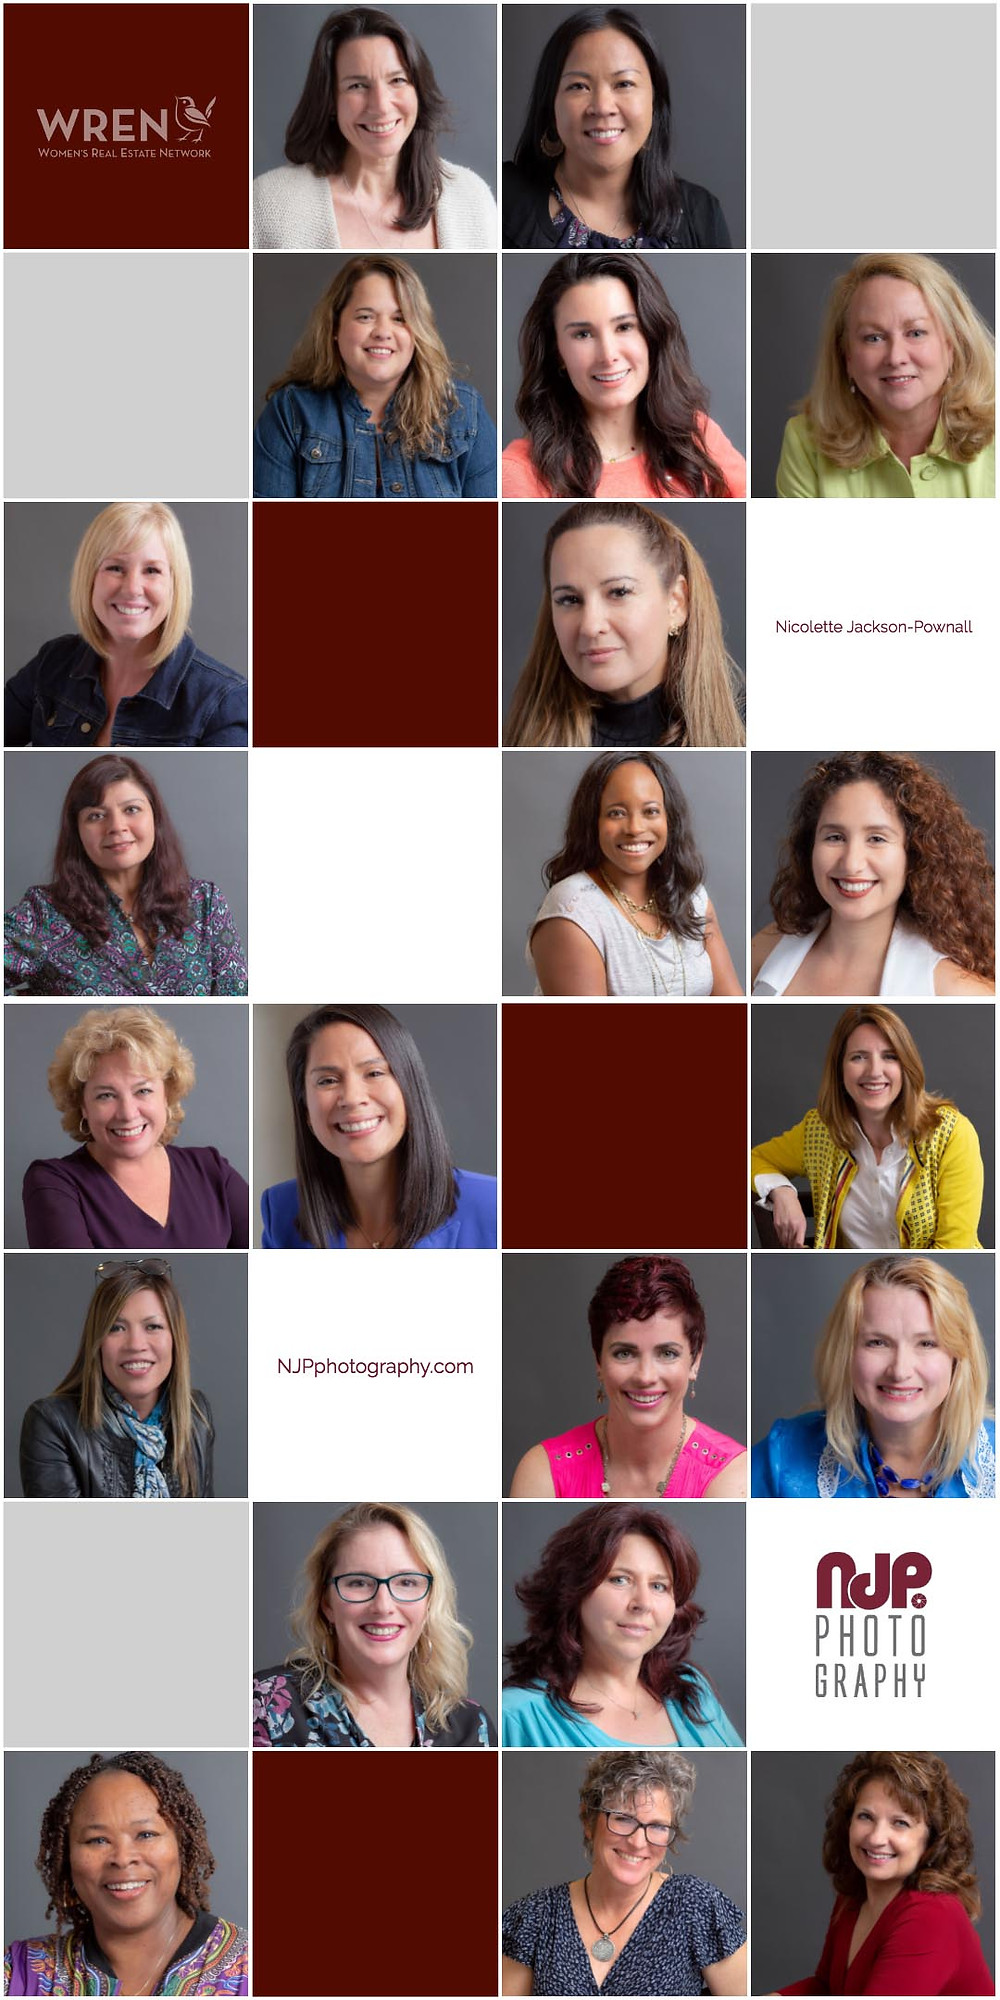 Women Real Estate Network event headshots